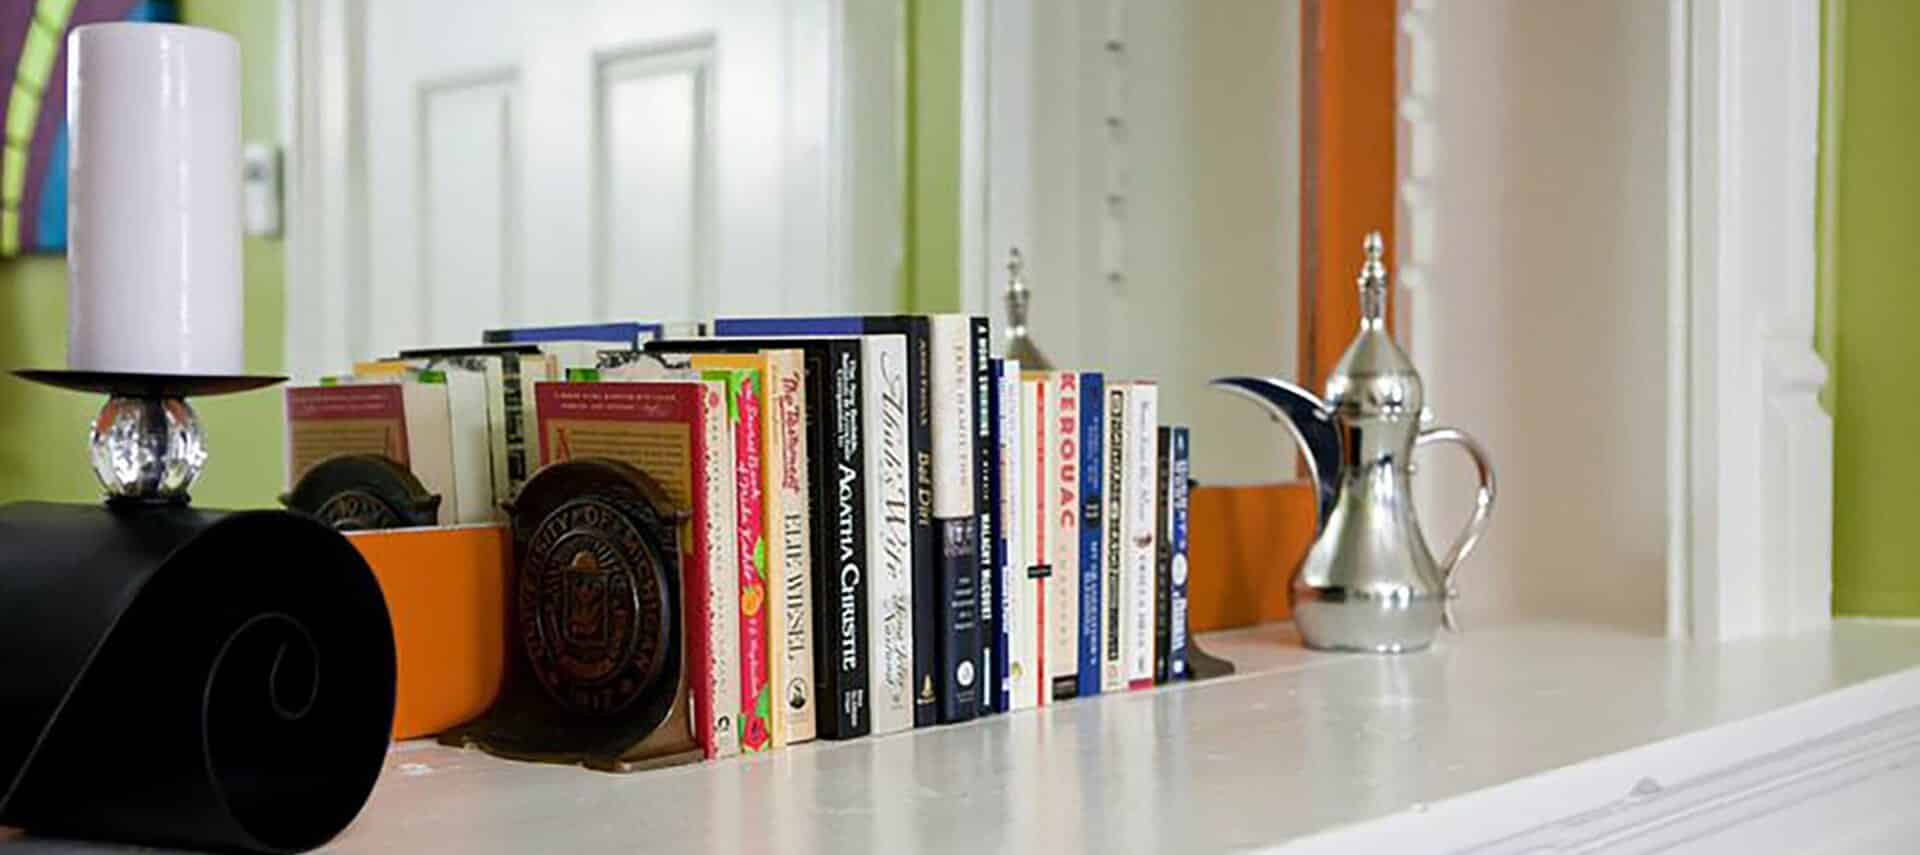 Row of books with brass bookends on a mantel in front of a mirror.